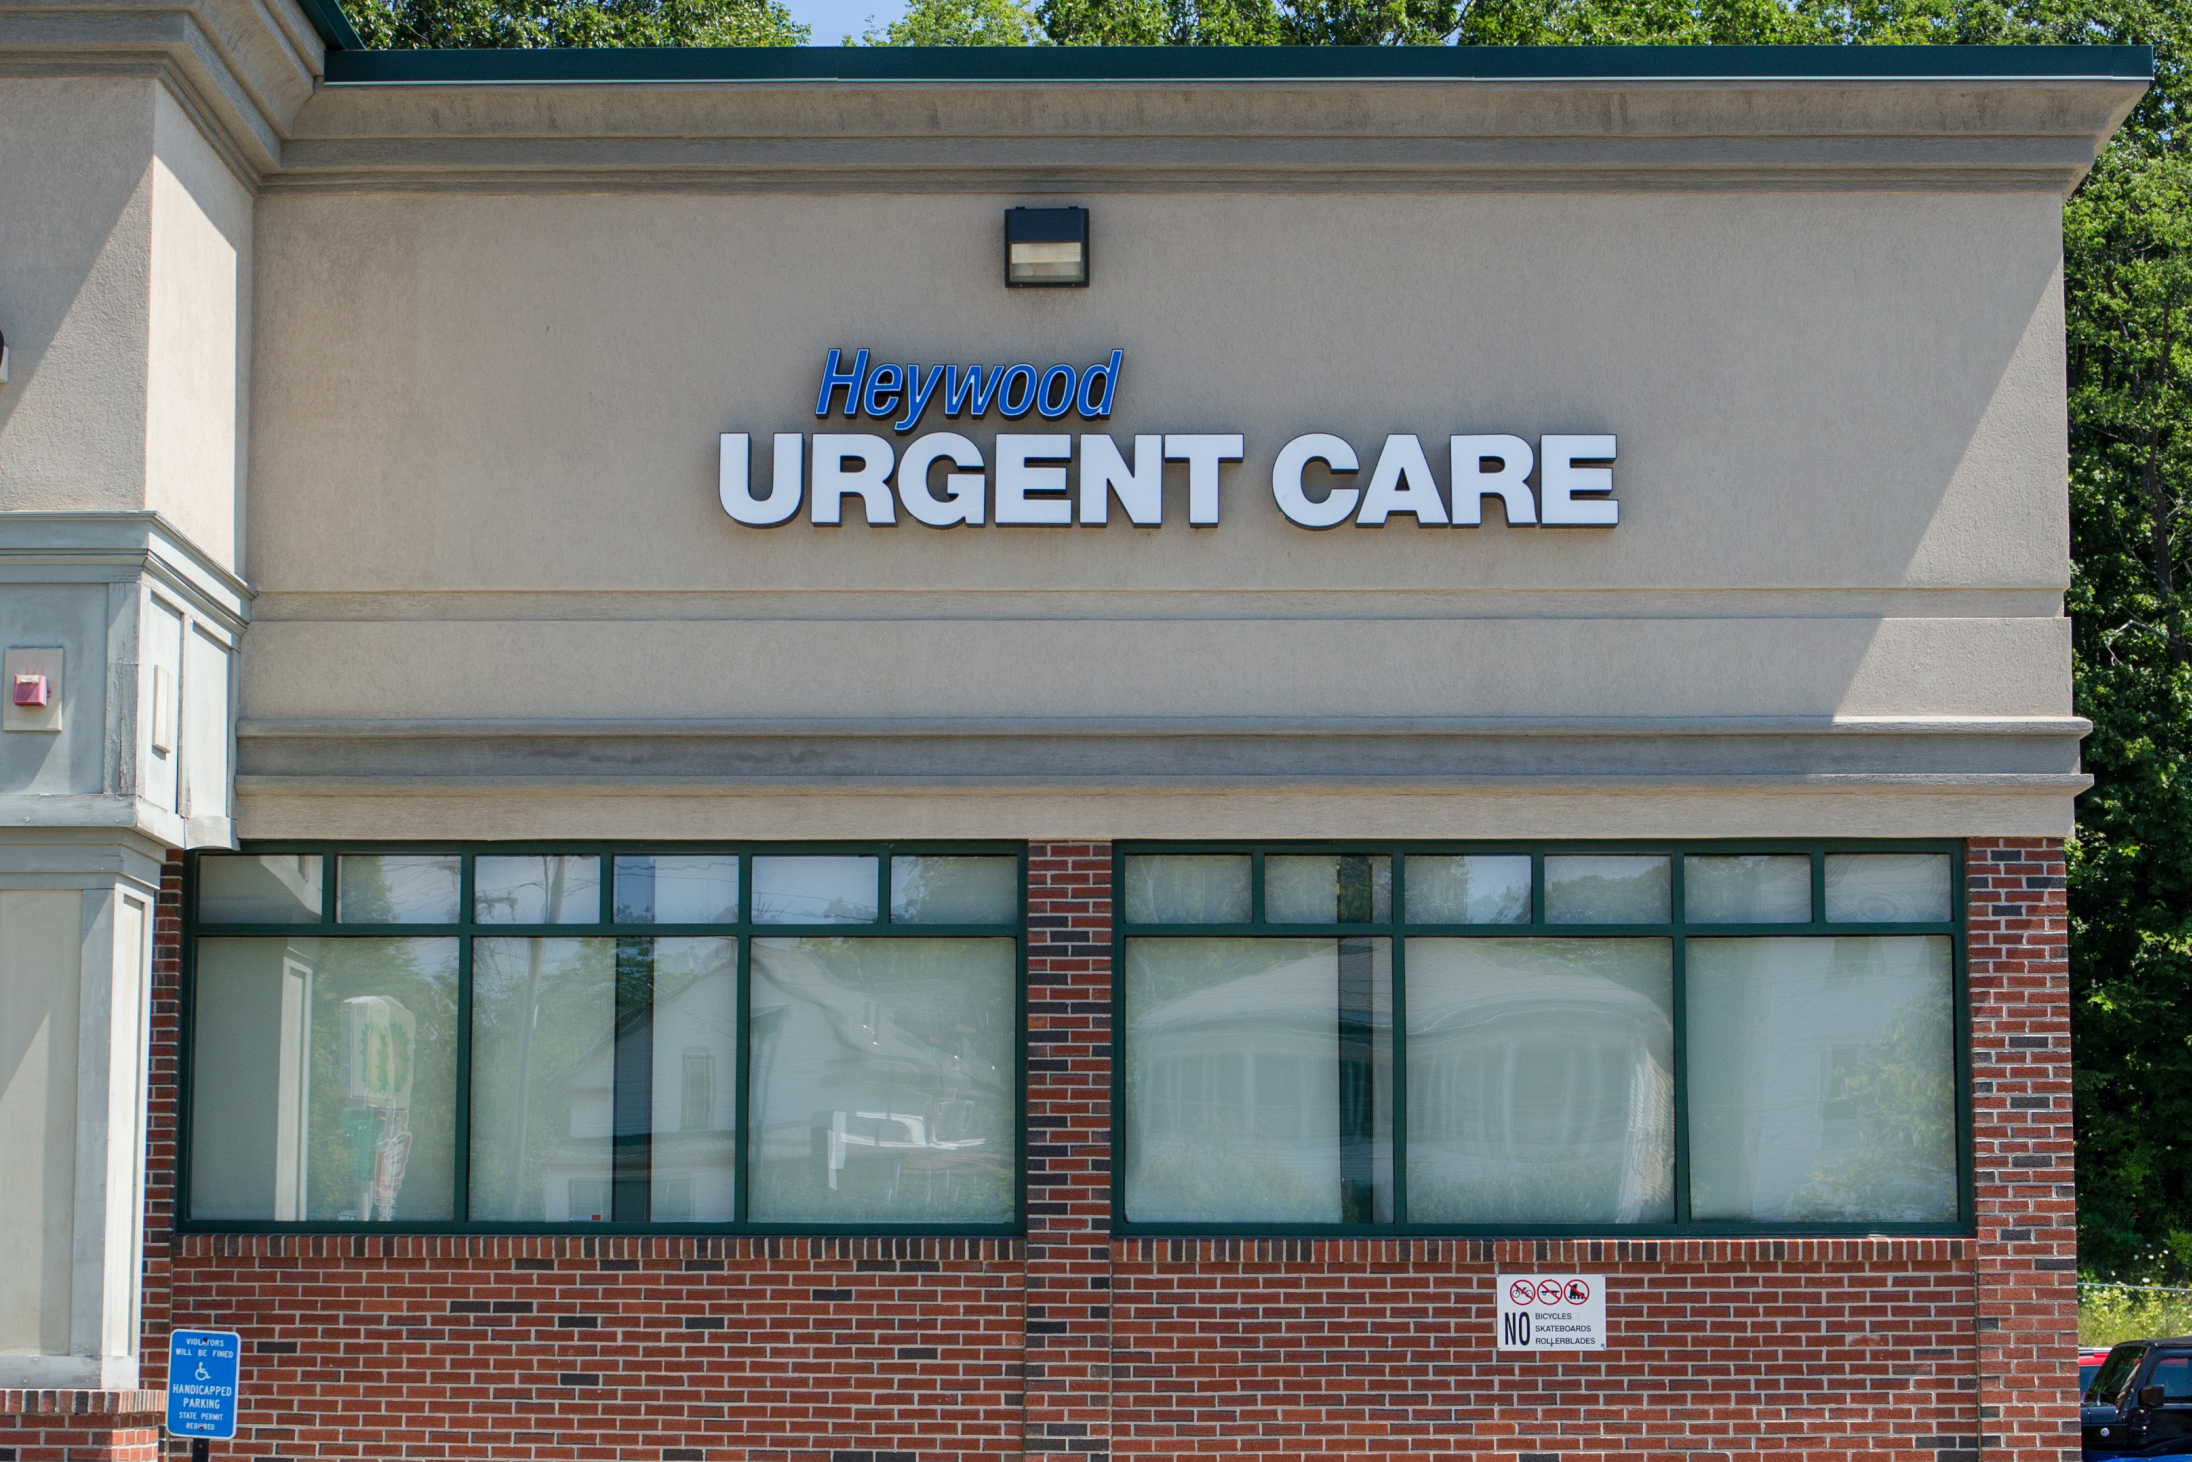 Heywood Urgent Care